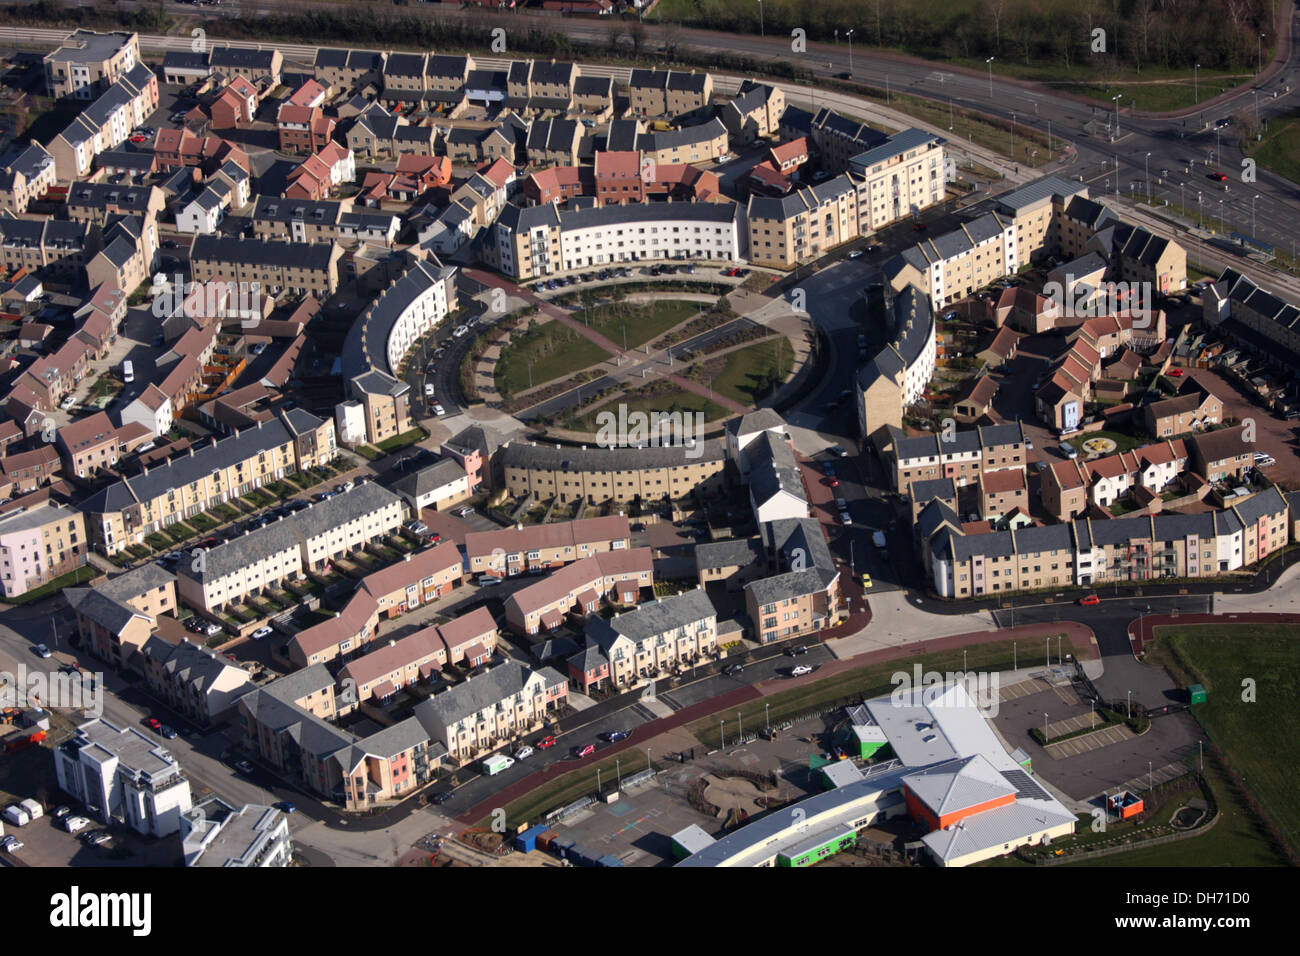 Aerial View of Orchard Park, Cambridge - Stock Image